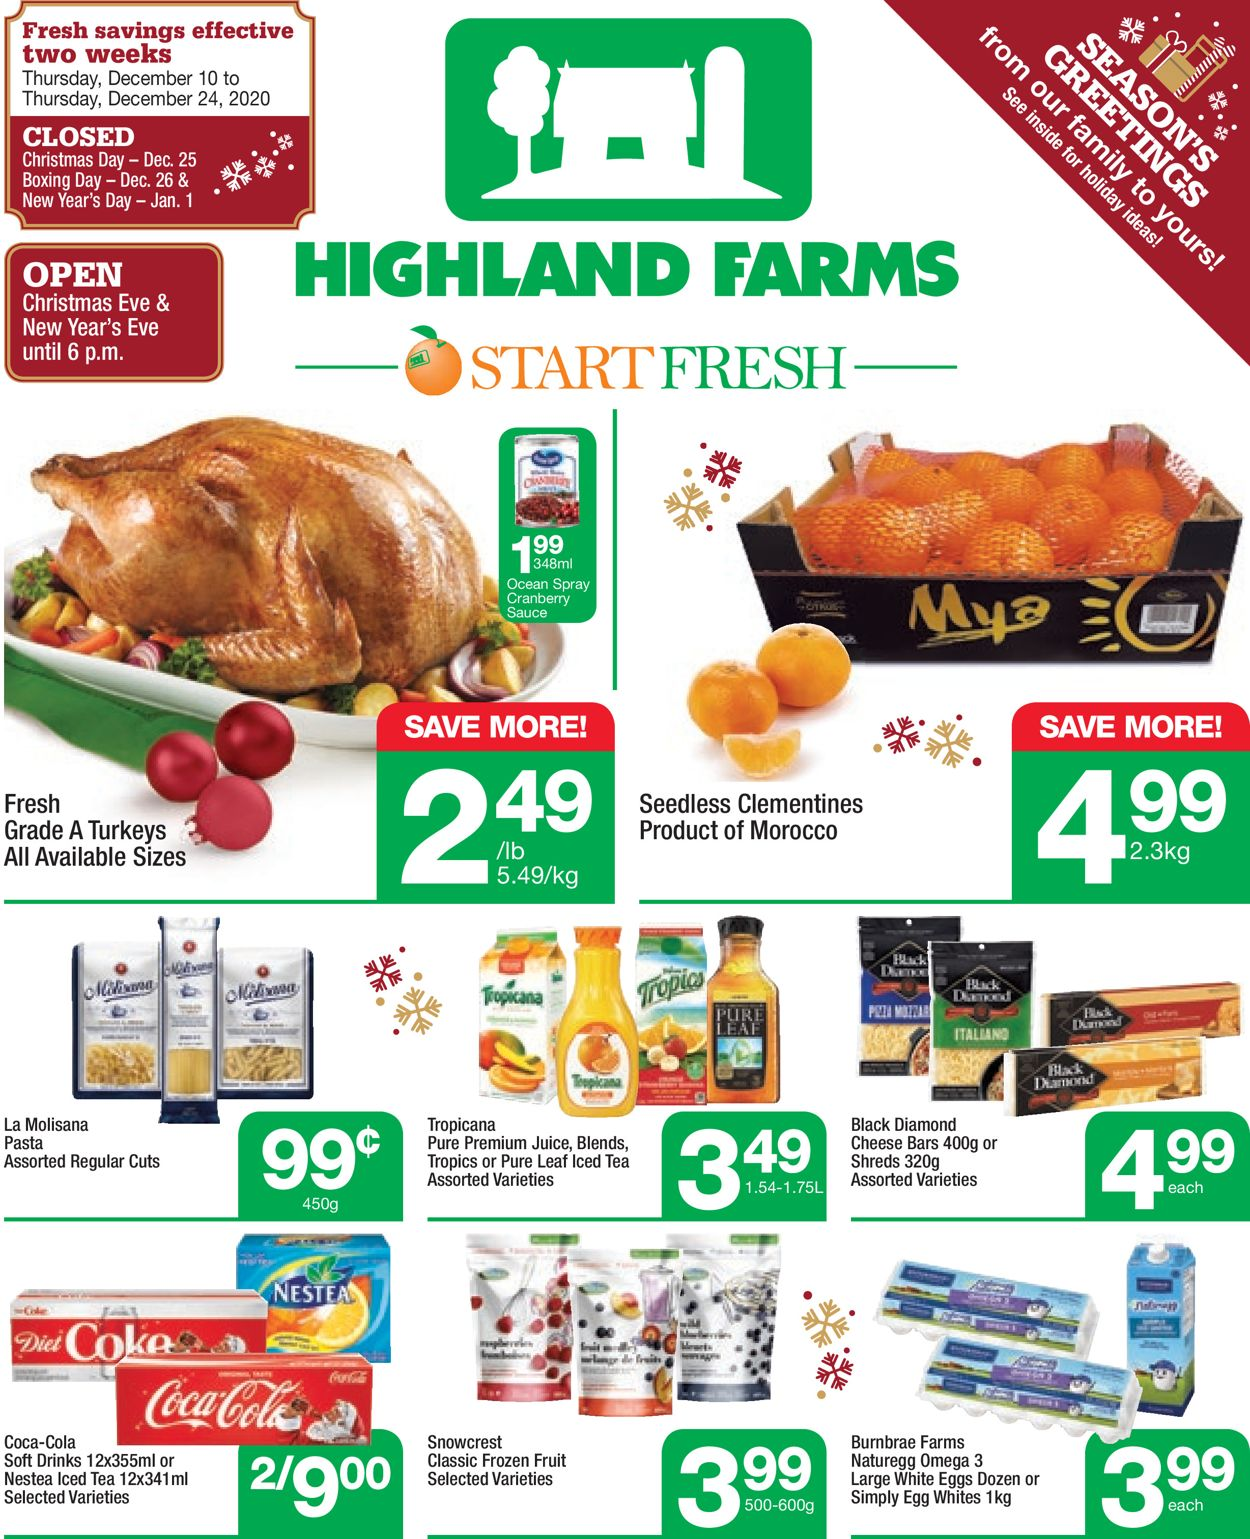 Highland Farms - Holiday 2020 Flyer - 12/10-12/24/2020